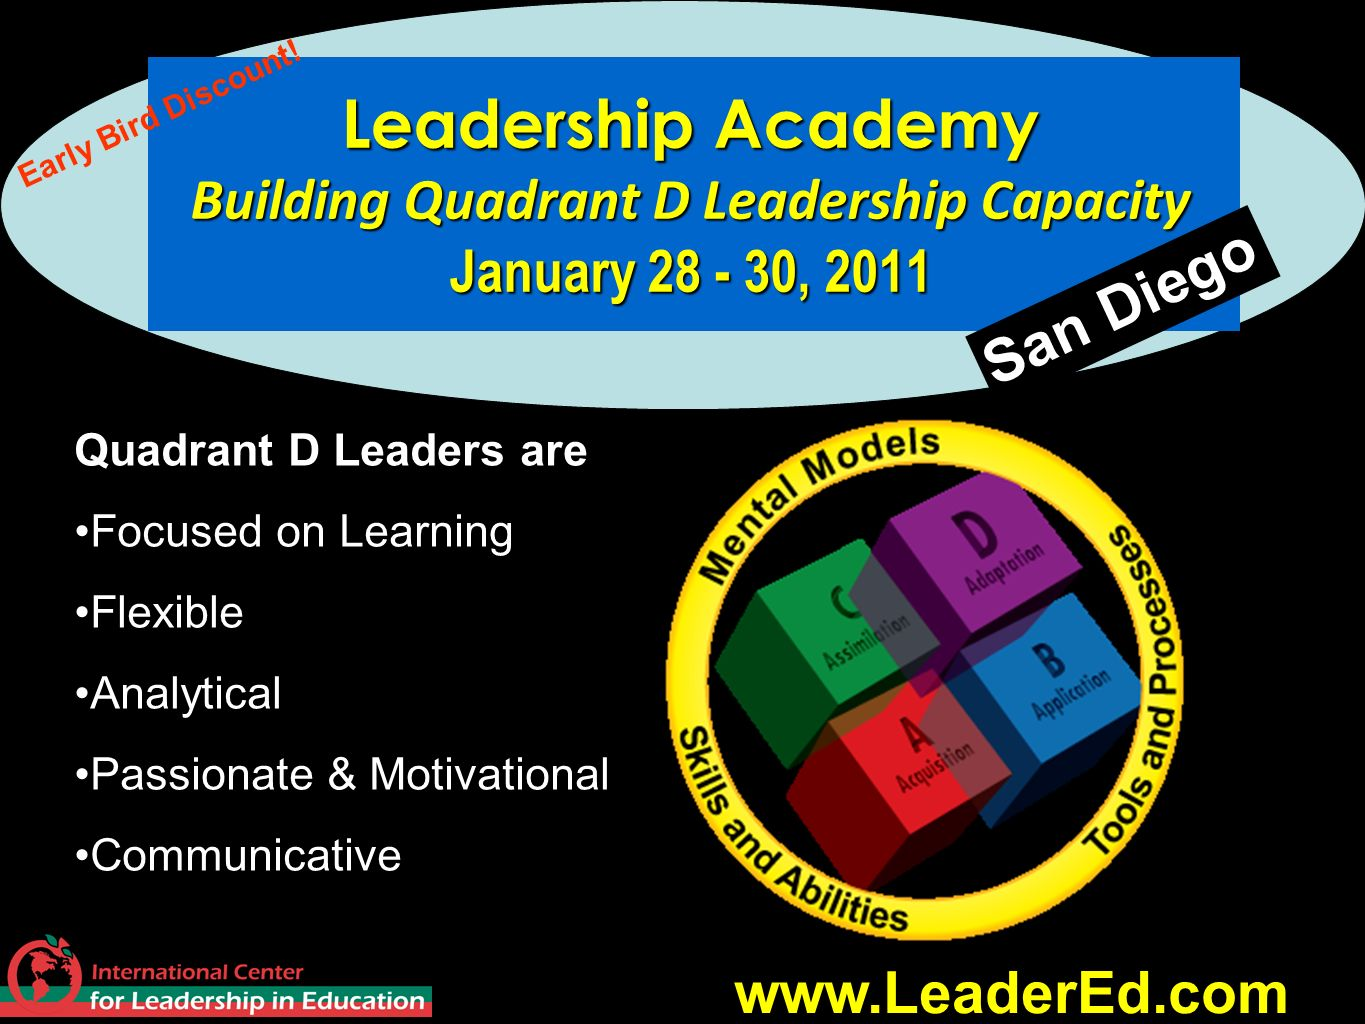 Leadership Academy Building Quadrant D Leadership Capacity January 28 - 30, 2011 www.LeaderEd.com San Diego Quadrant D Leaders are Focused on Learning